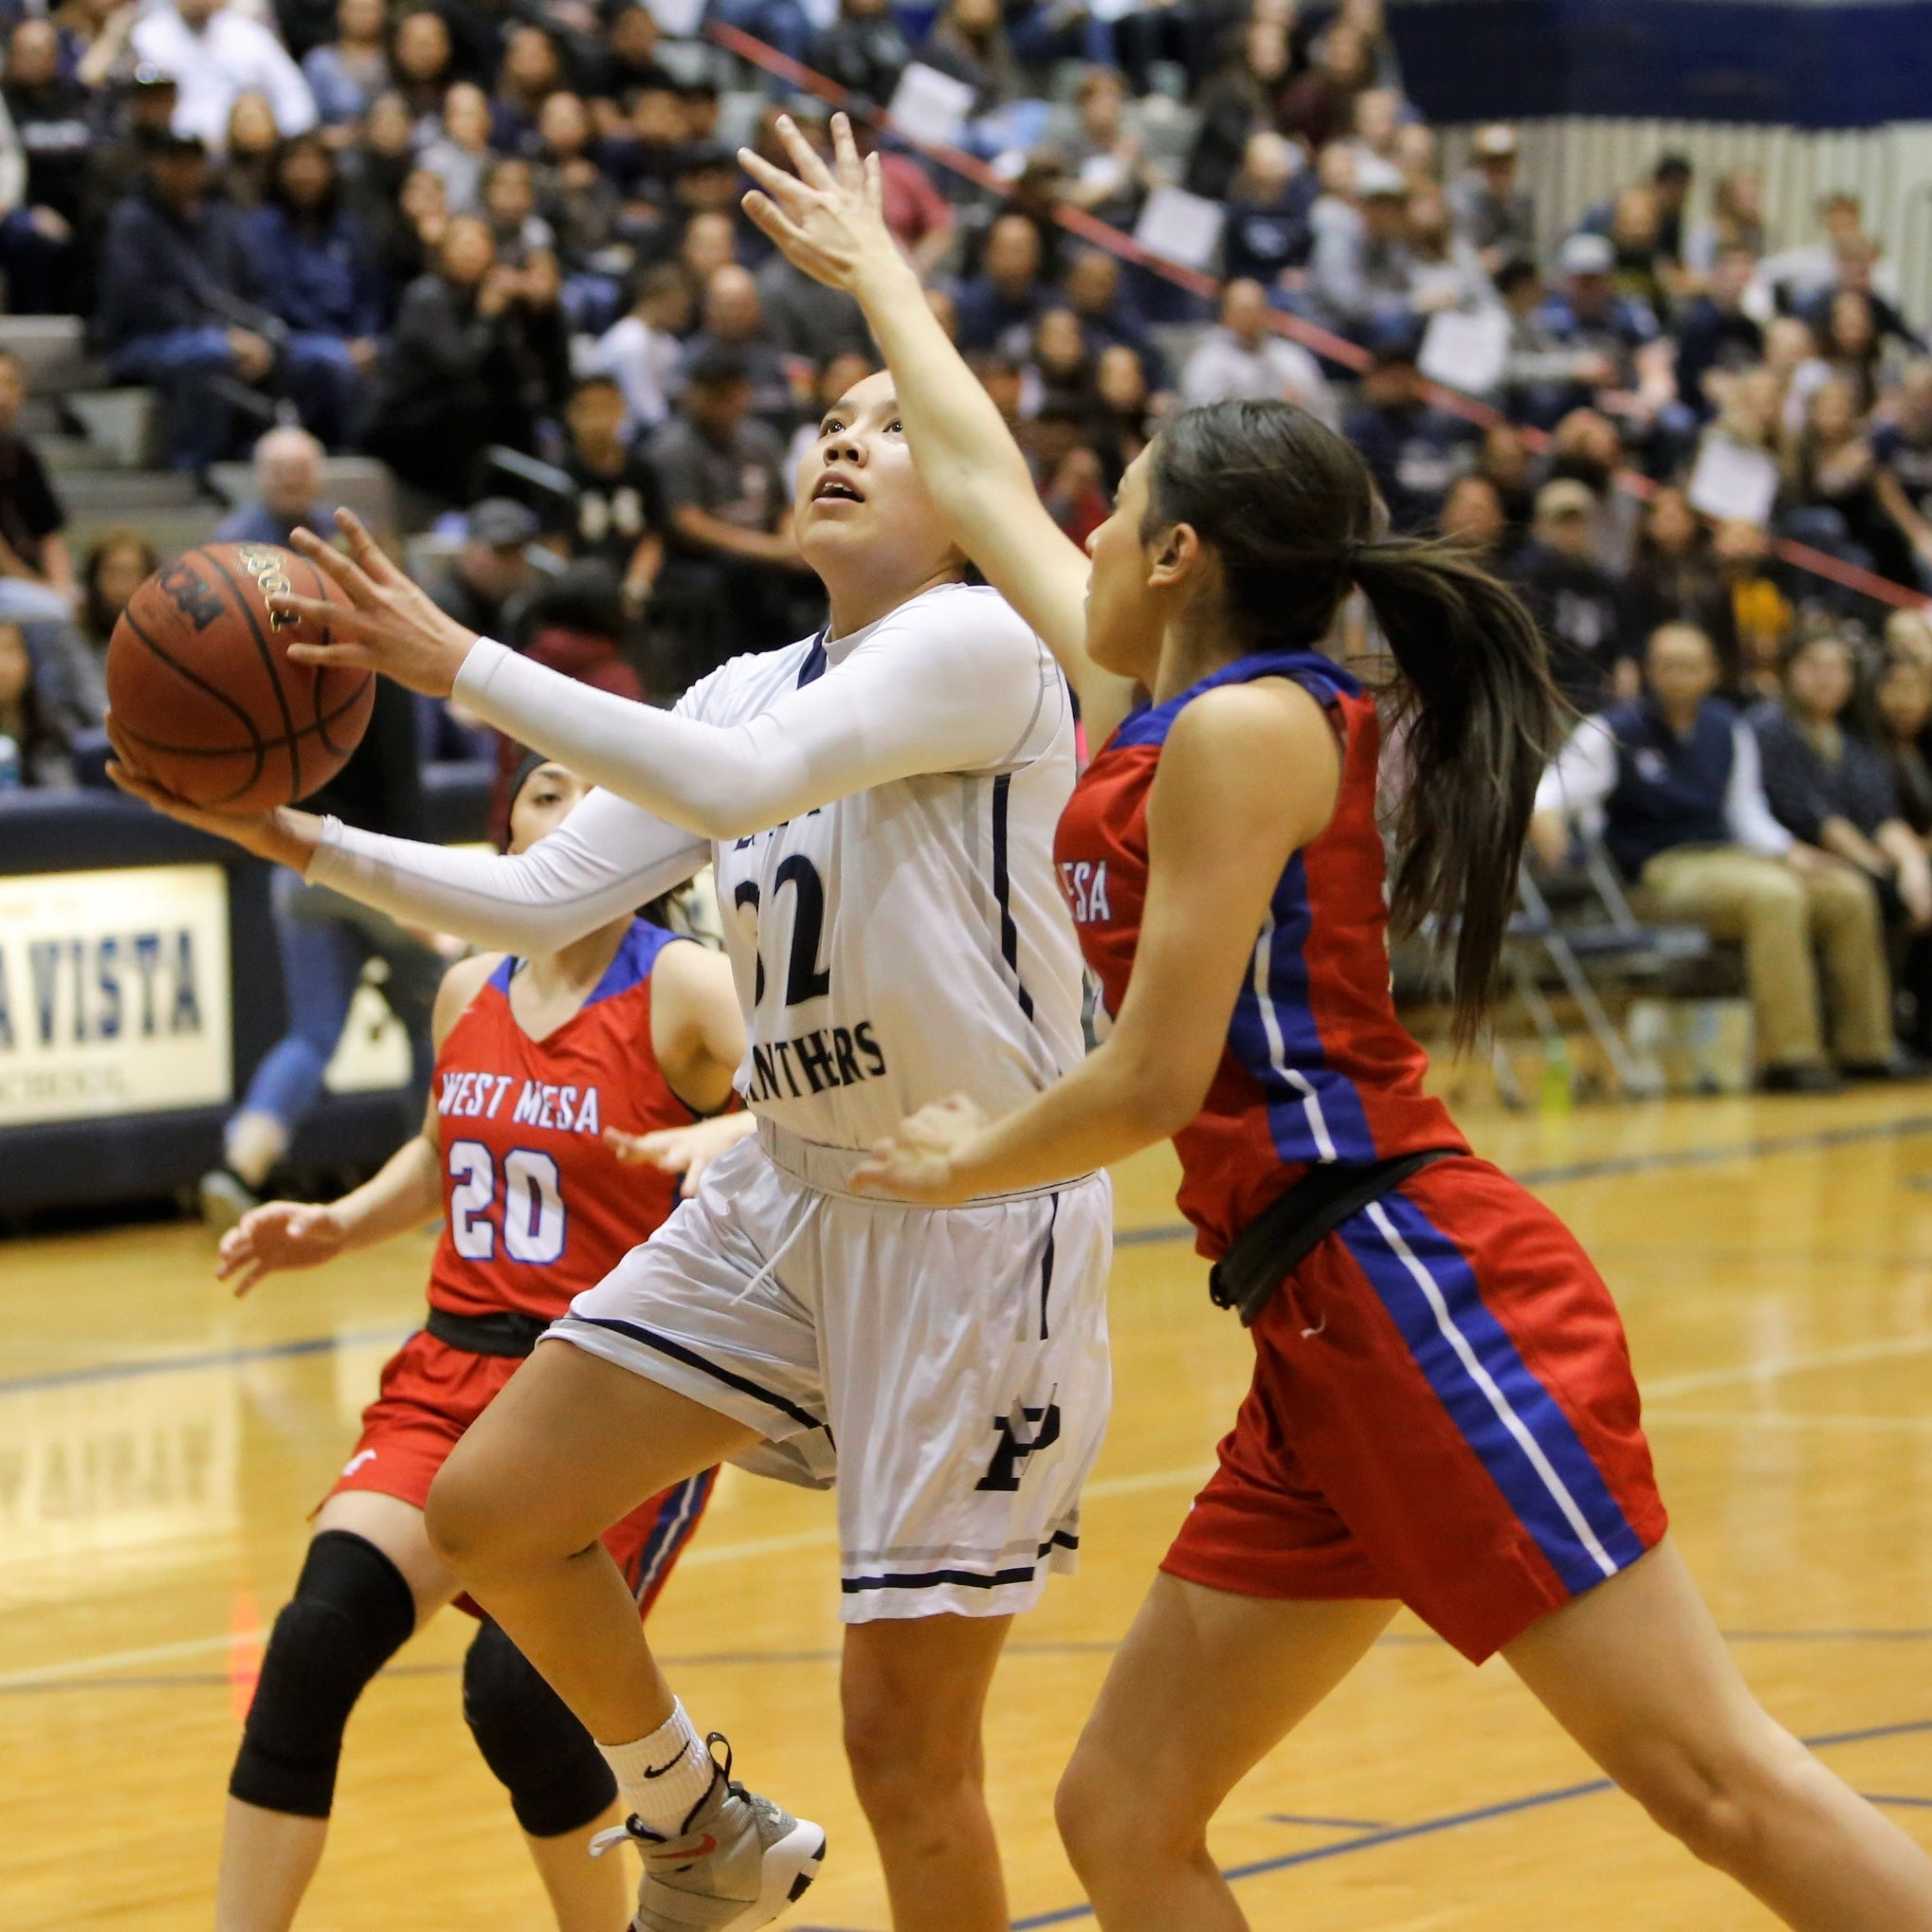 Woods, Billy lead PV girls past West Mesa